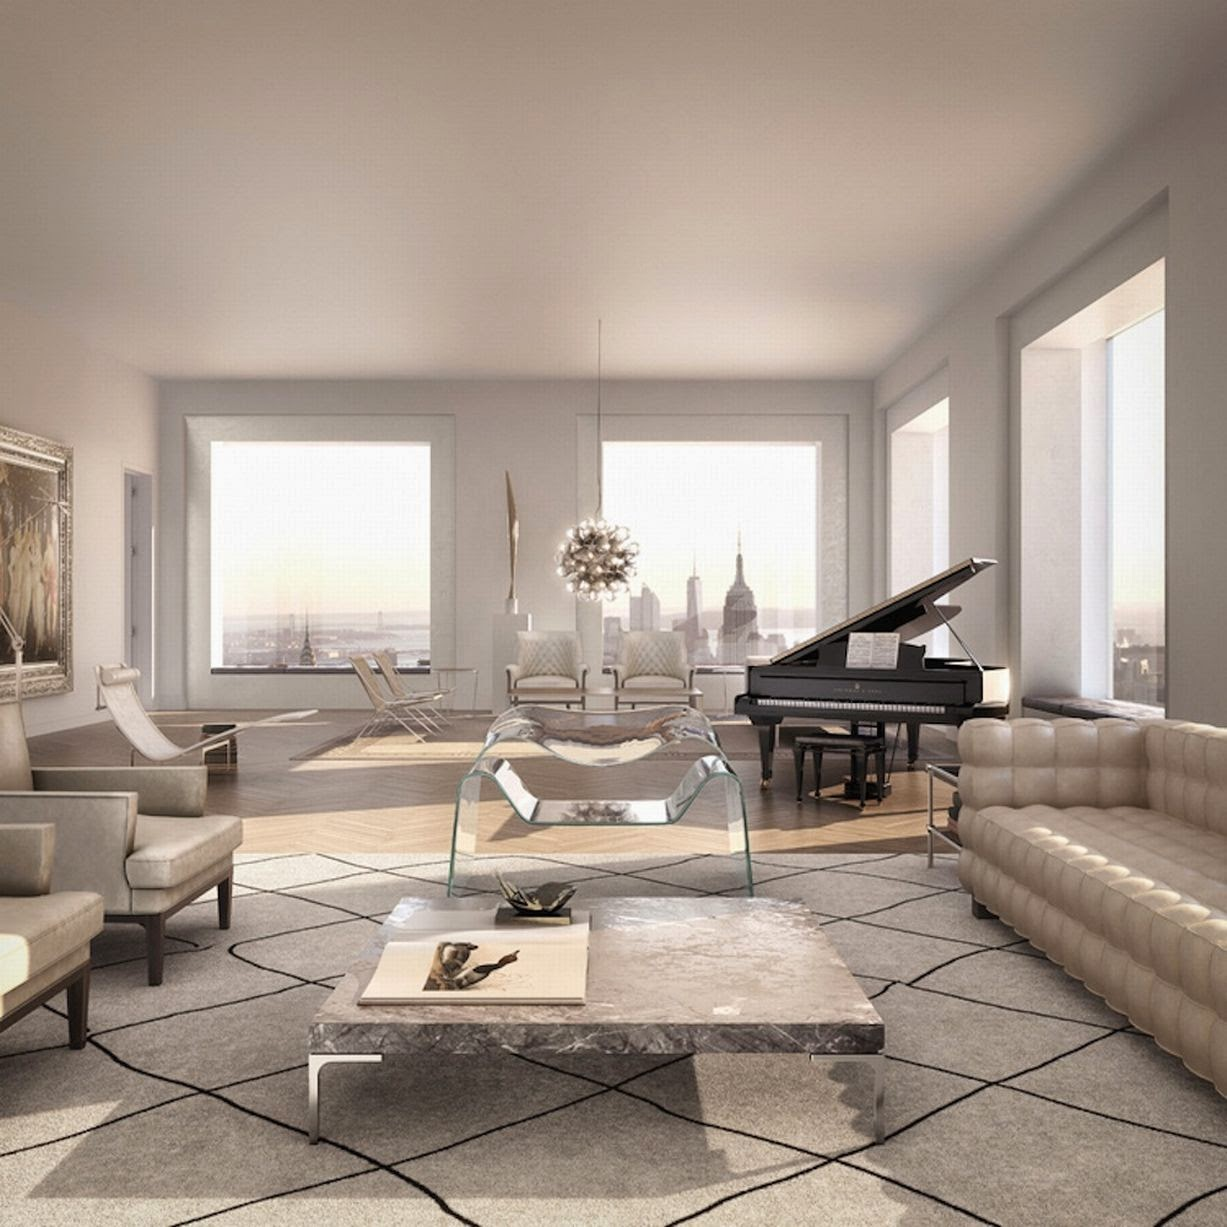 The Avenue By Executive Apartments: Passion For Luxury : Glorious 432 Park Avenue Skyscraper